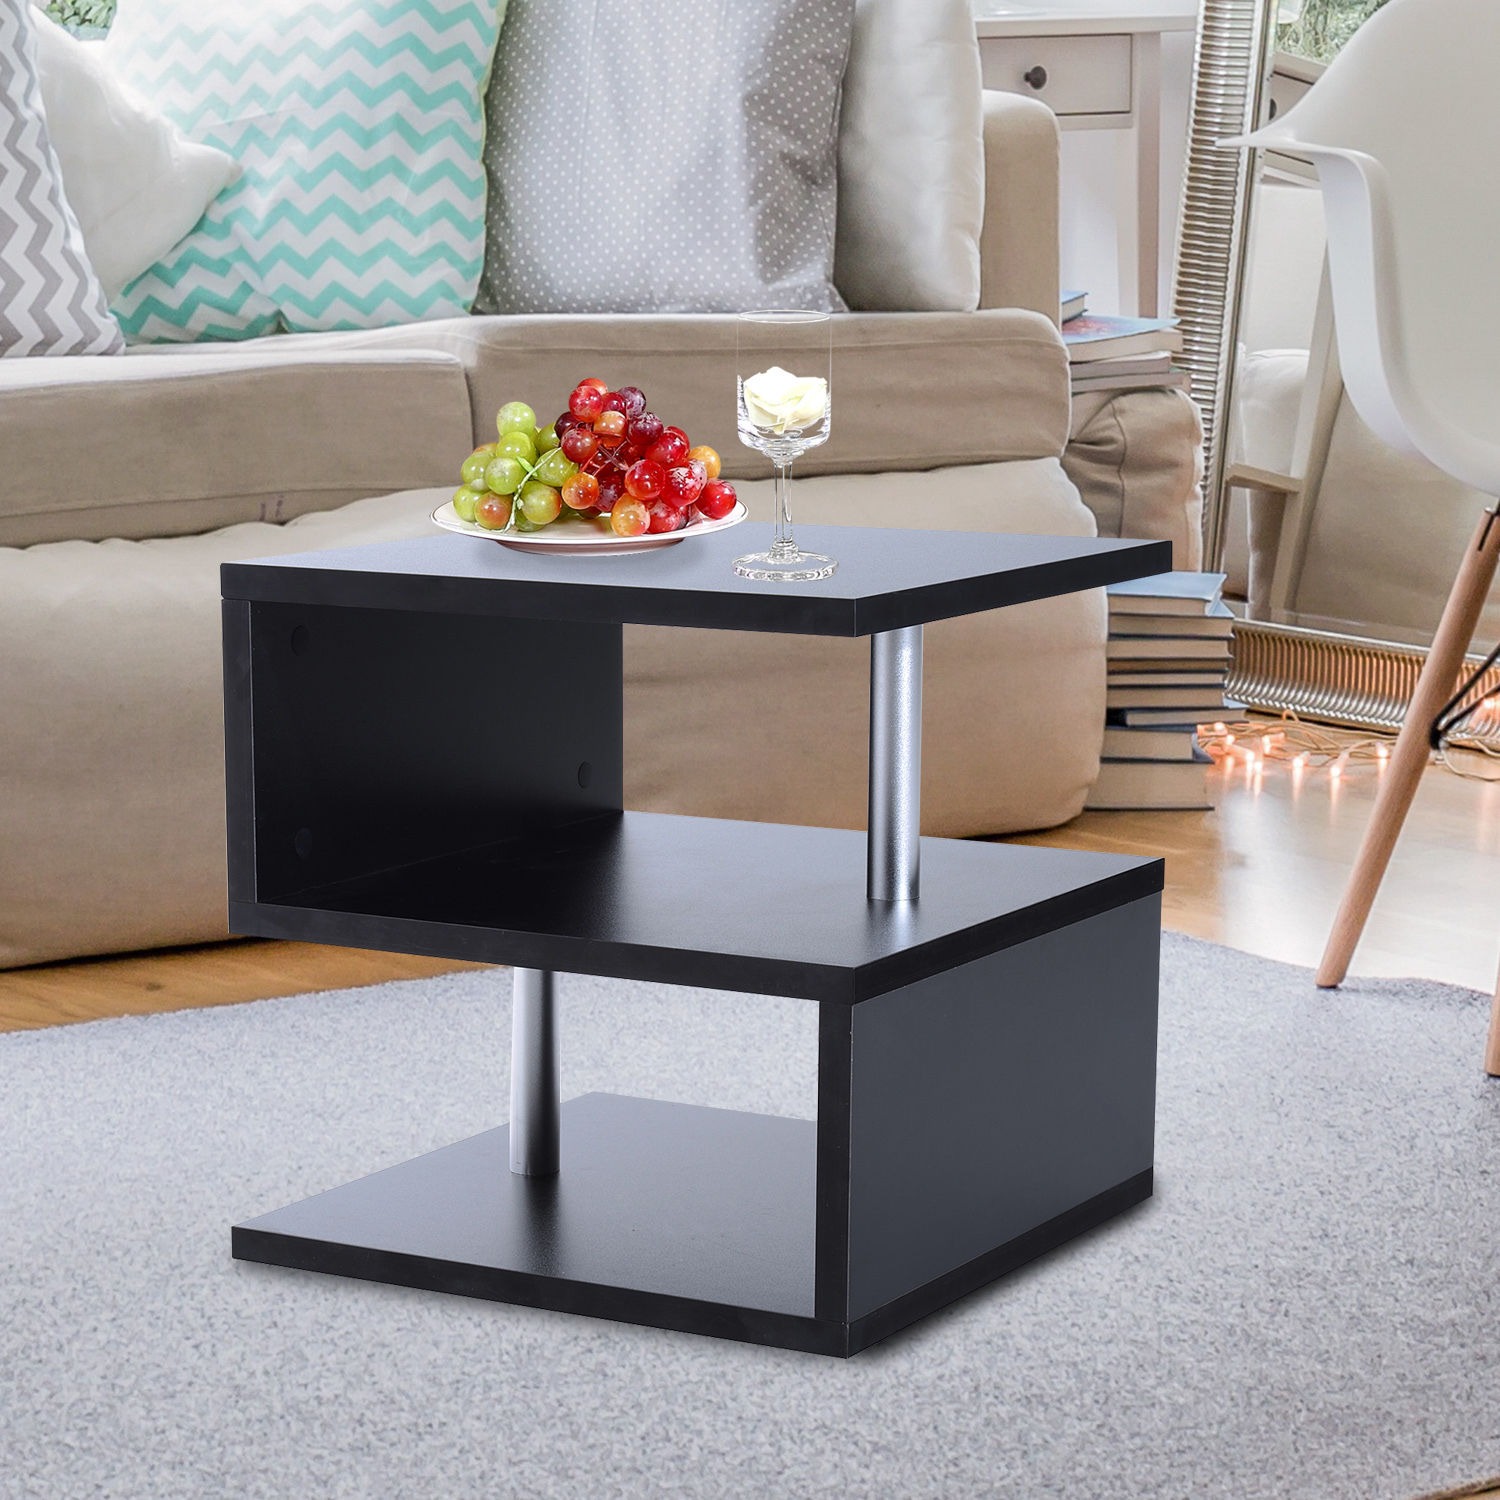 Sofa End Tables With Storage 2 Tier Side End Coffee Table Storage Shelves Sofa Couch